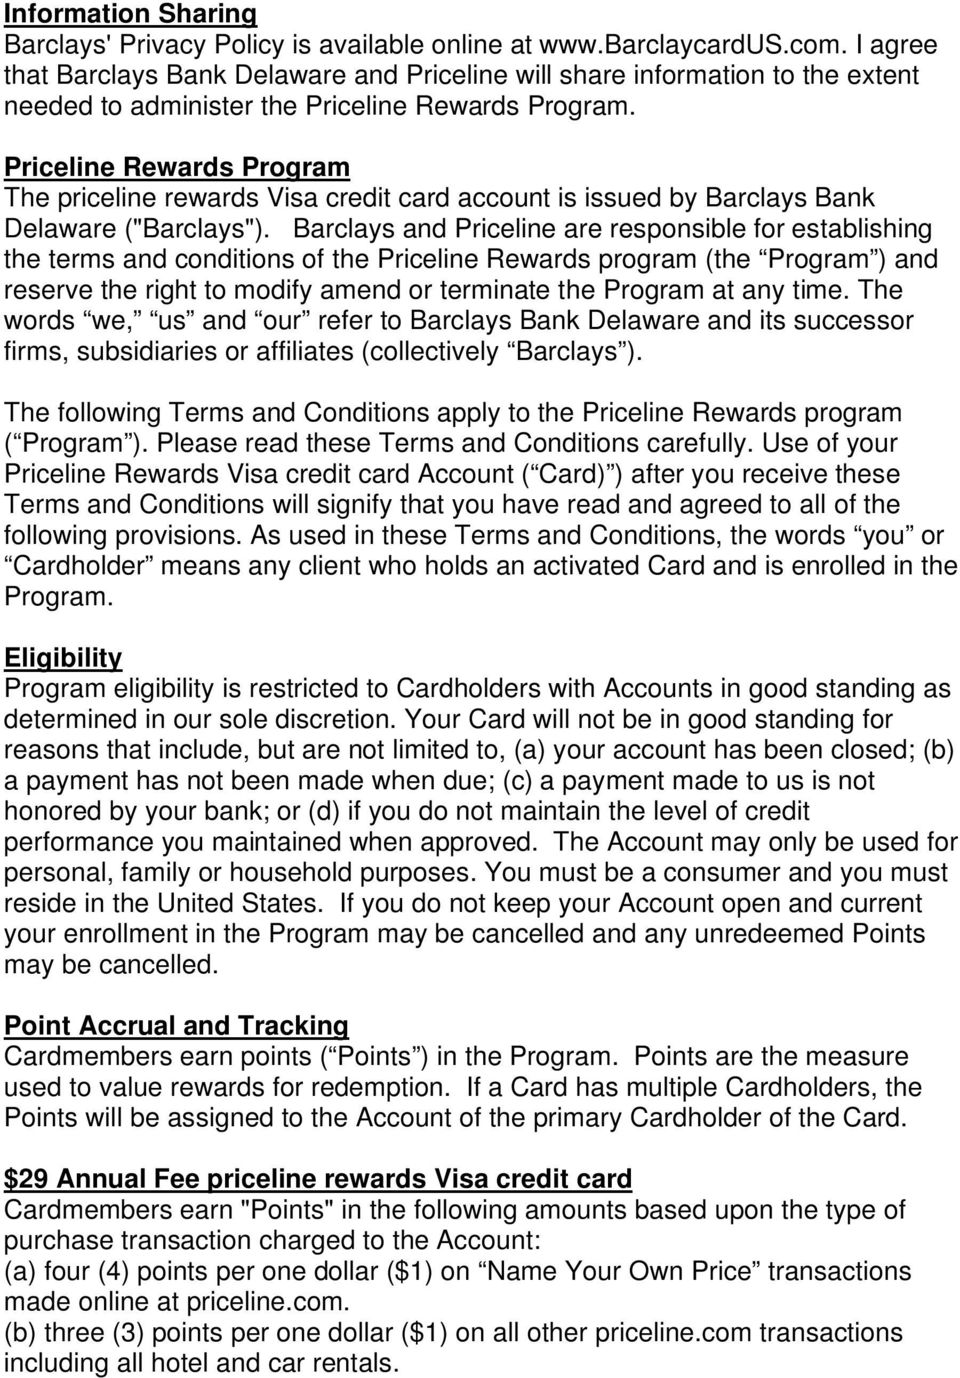 "Priceline Rewards Program The priceline rewards Visa credit card account is issued by Barclays Bank Delaware (""Barclays"")."